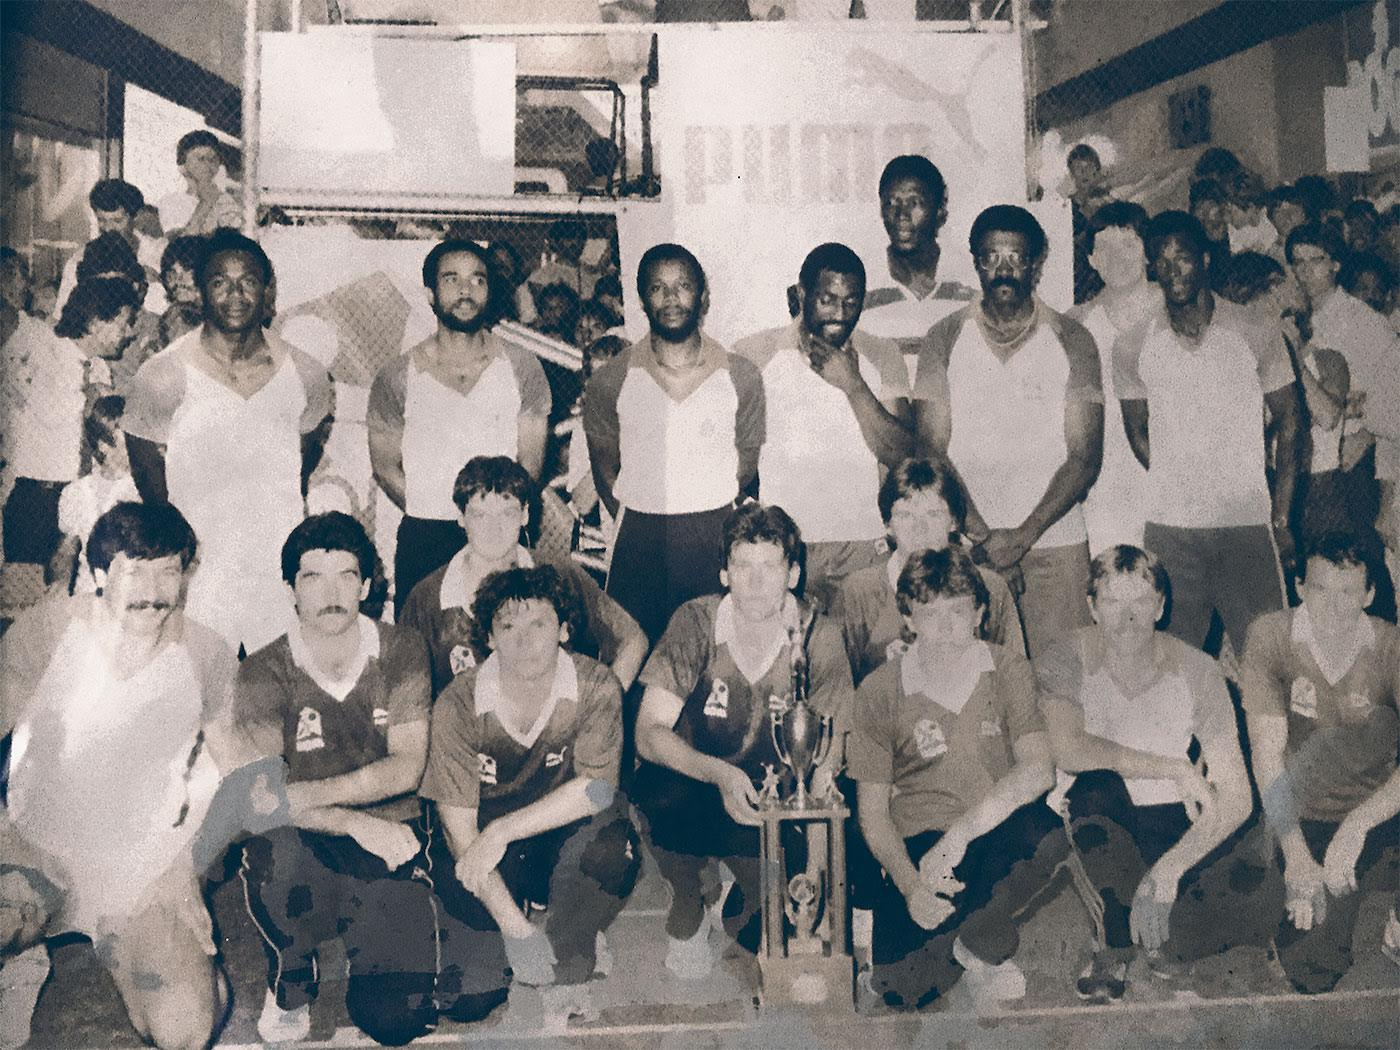 The West Indians and the Western Australia indoor cricket players in Perth in 1984